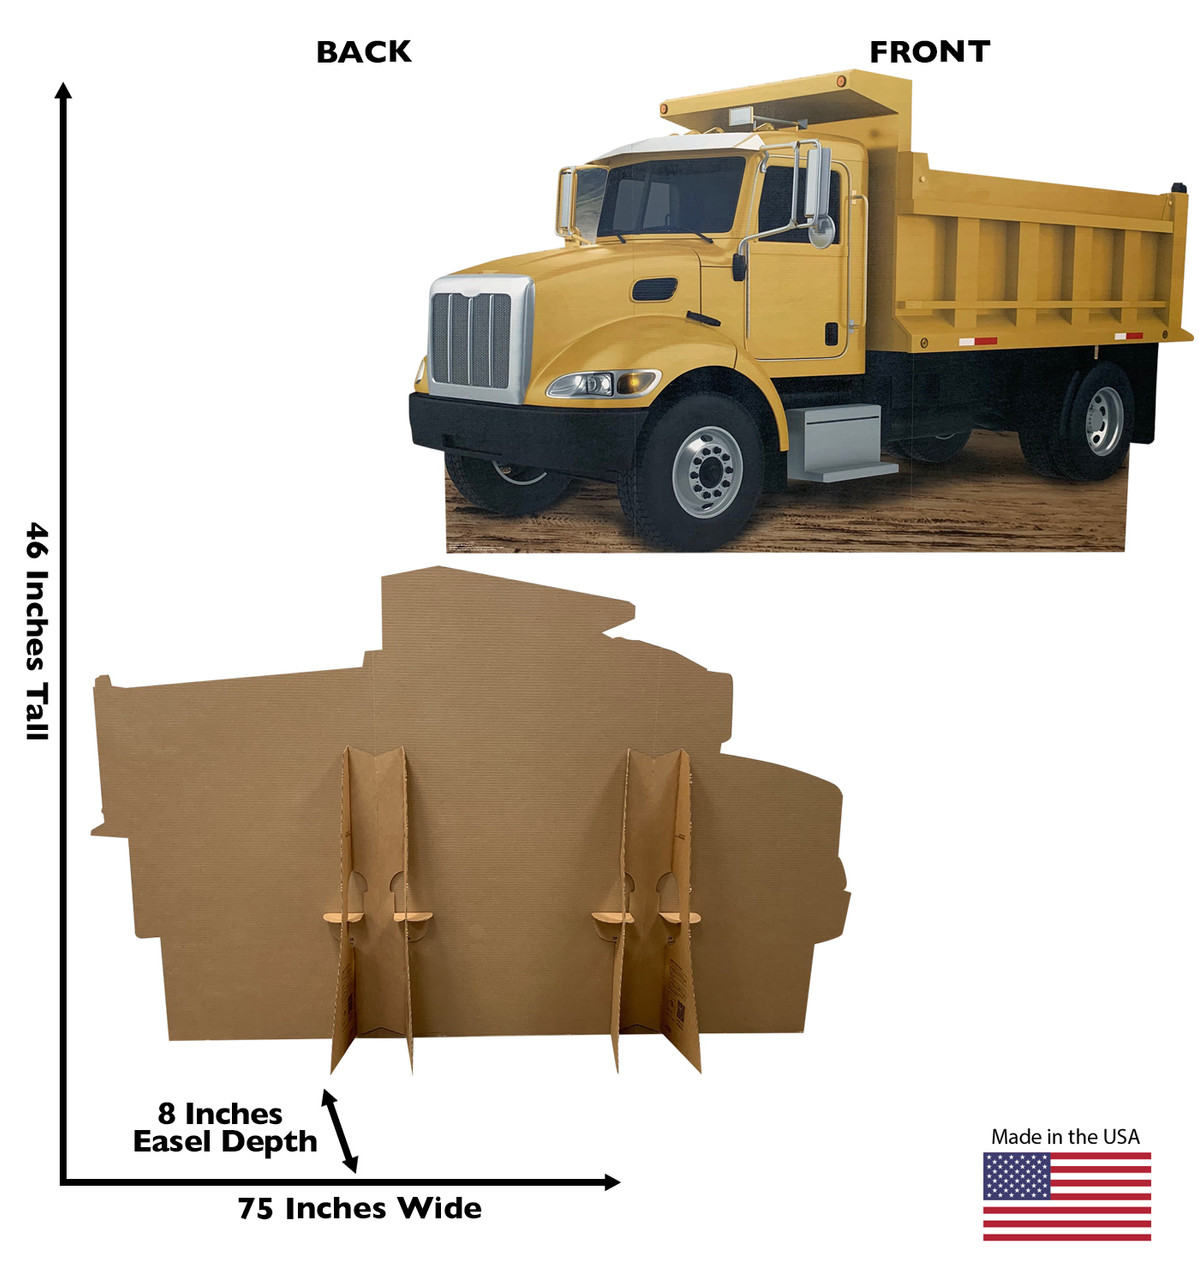 Life-size cardboard standee of construction dump truck with back and front dimensions.